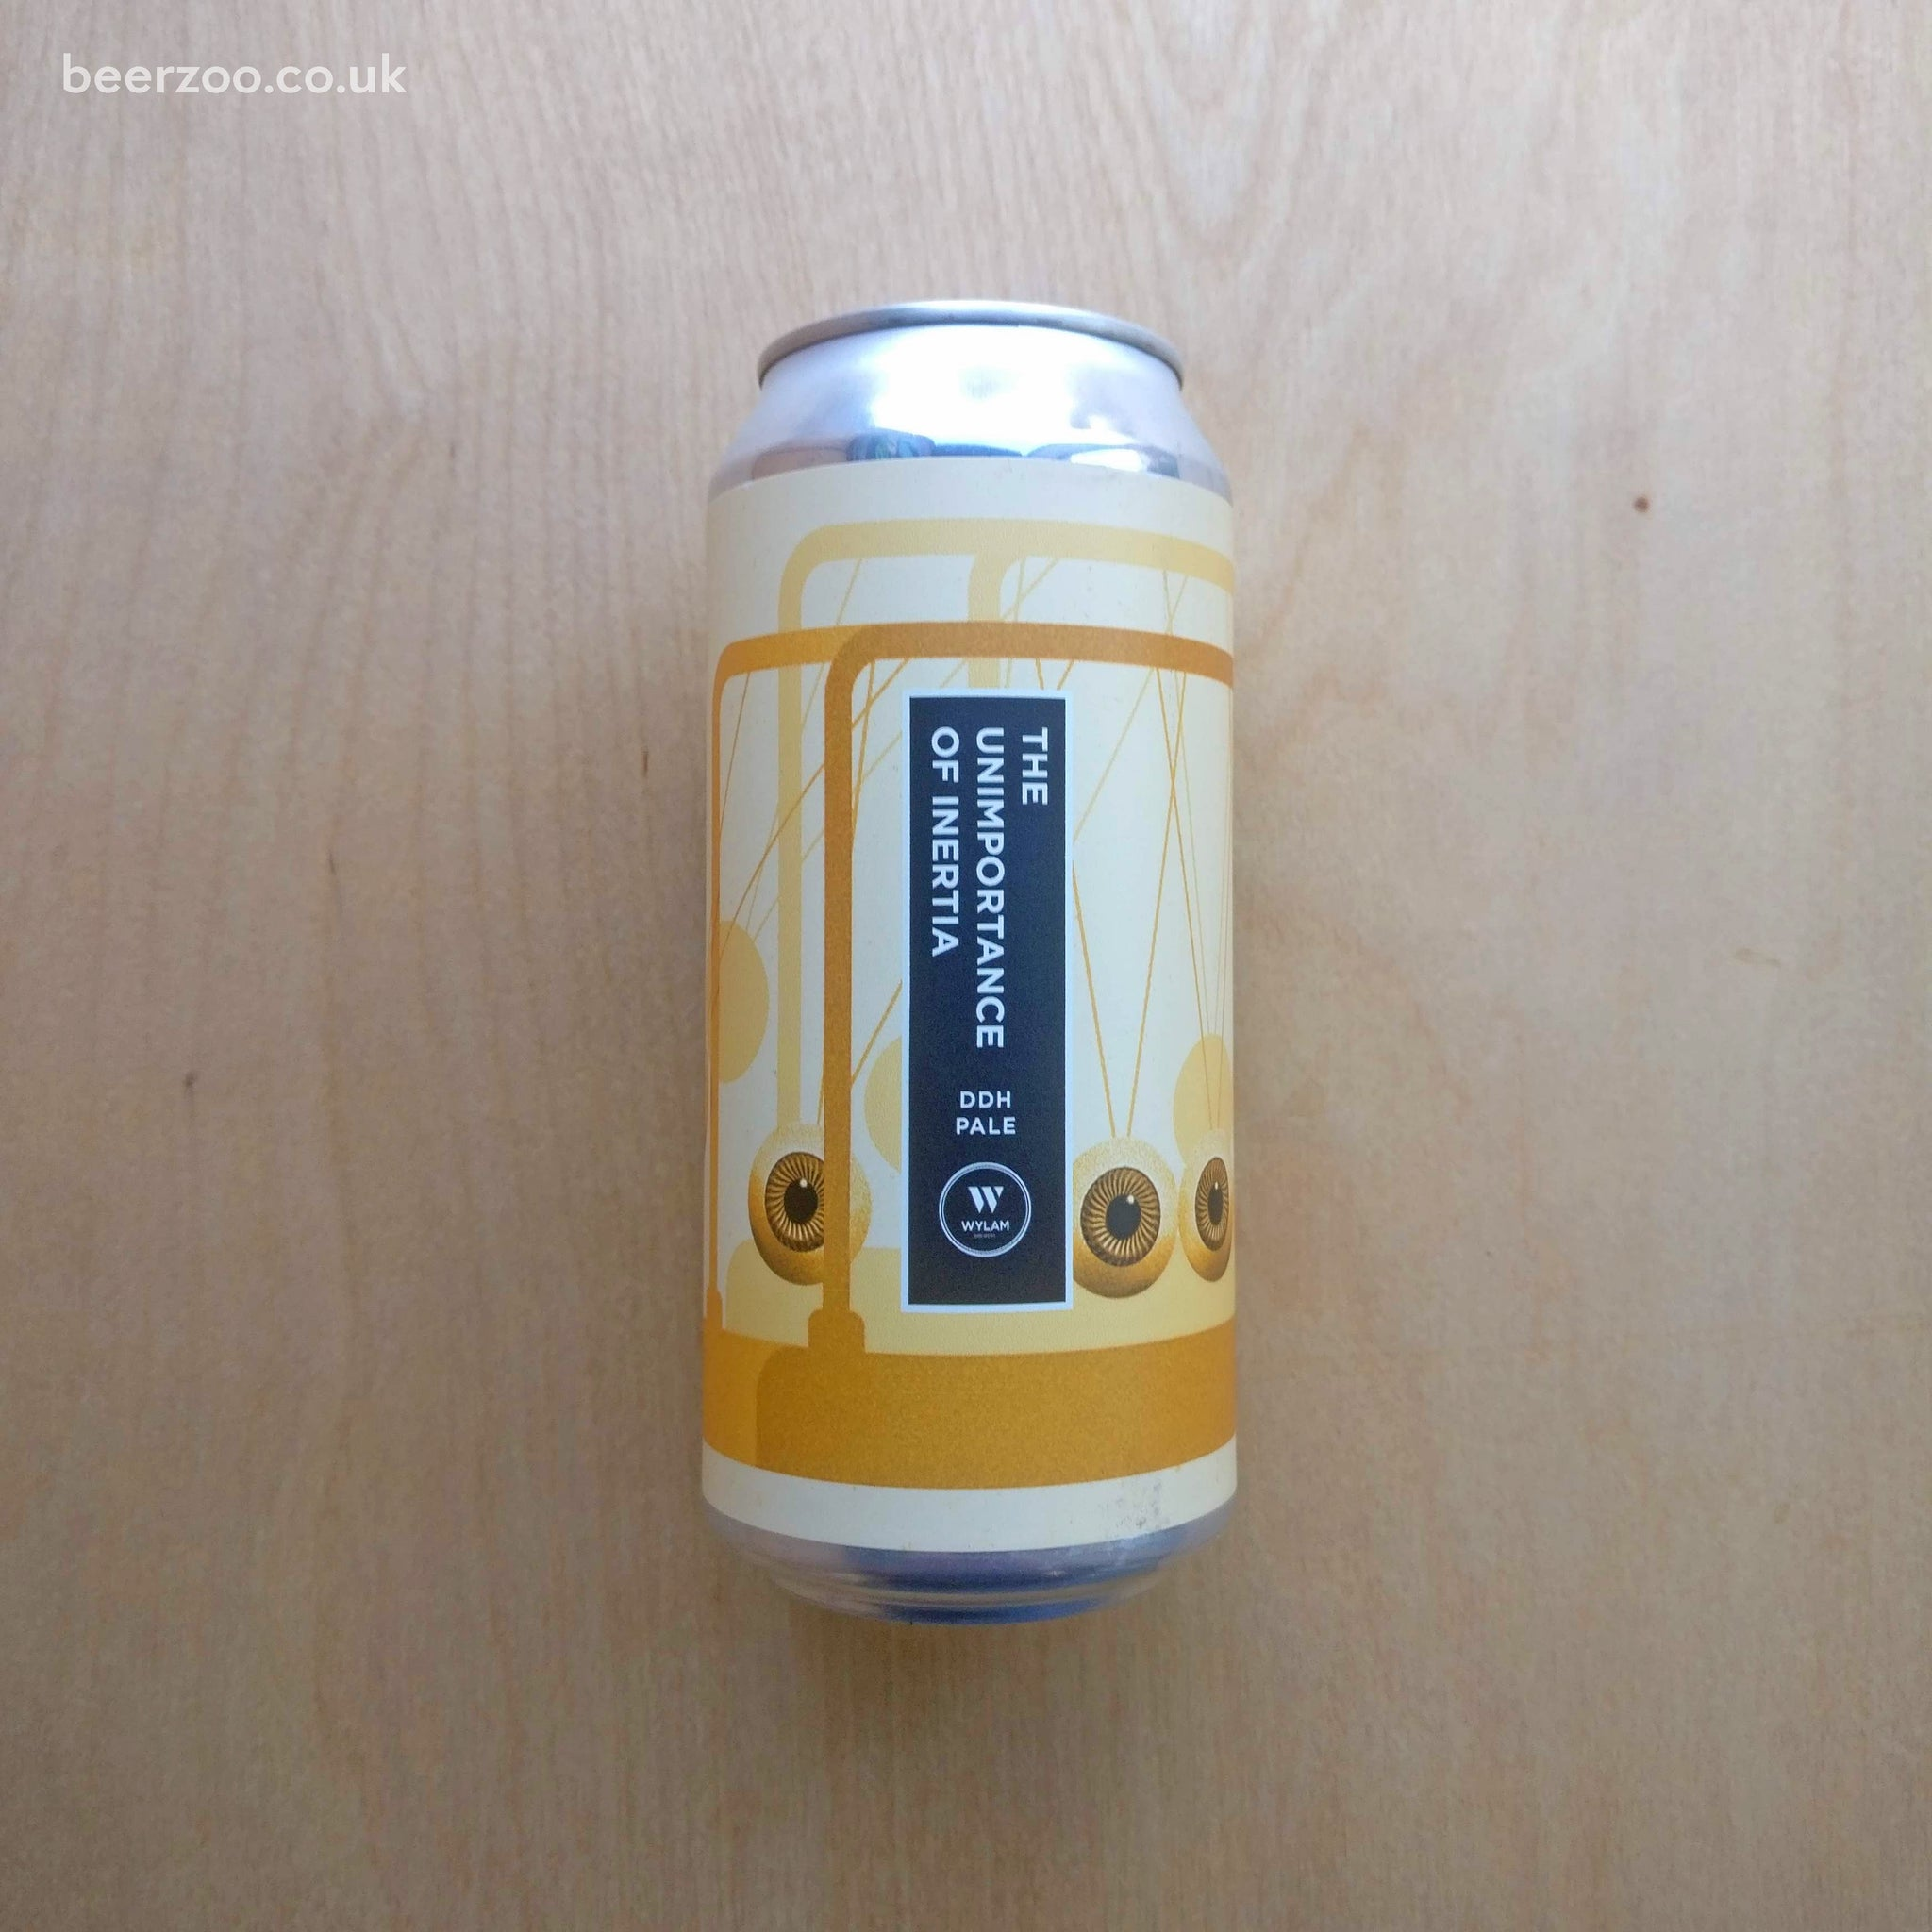 Wylam - The Unimportance Of Inertia 5.8% (440ml)